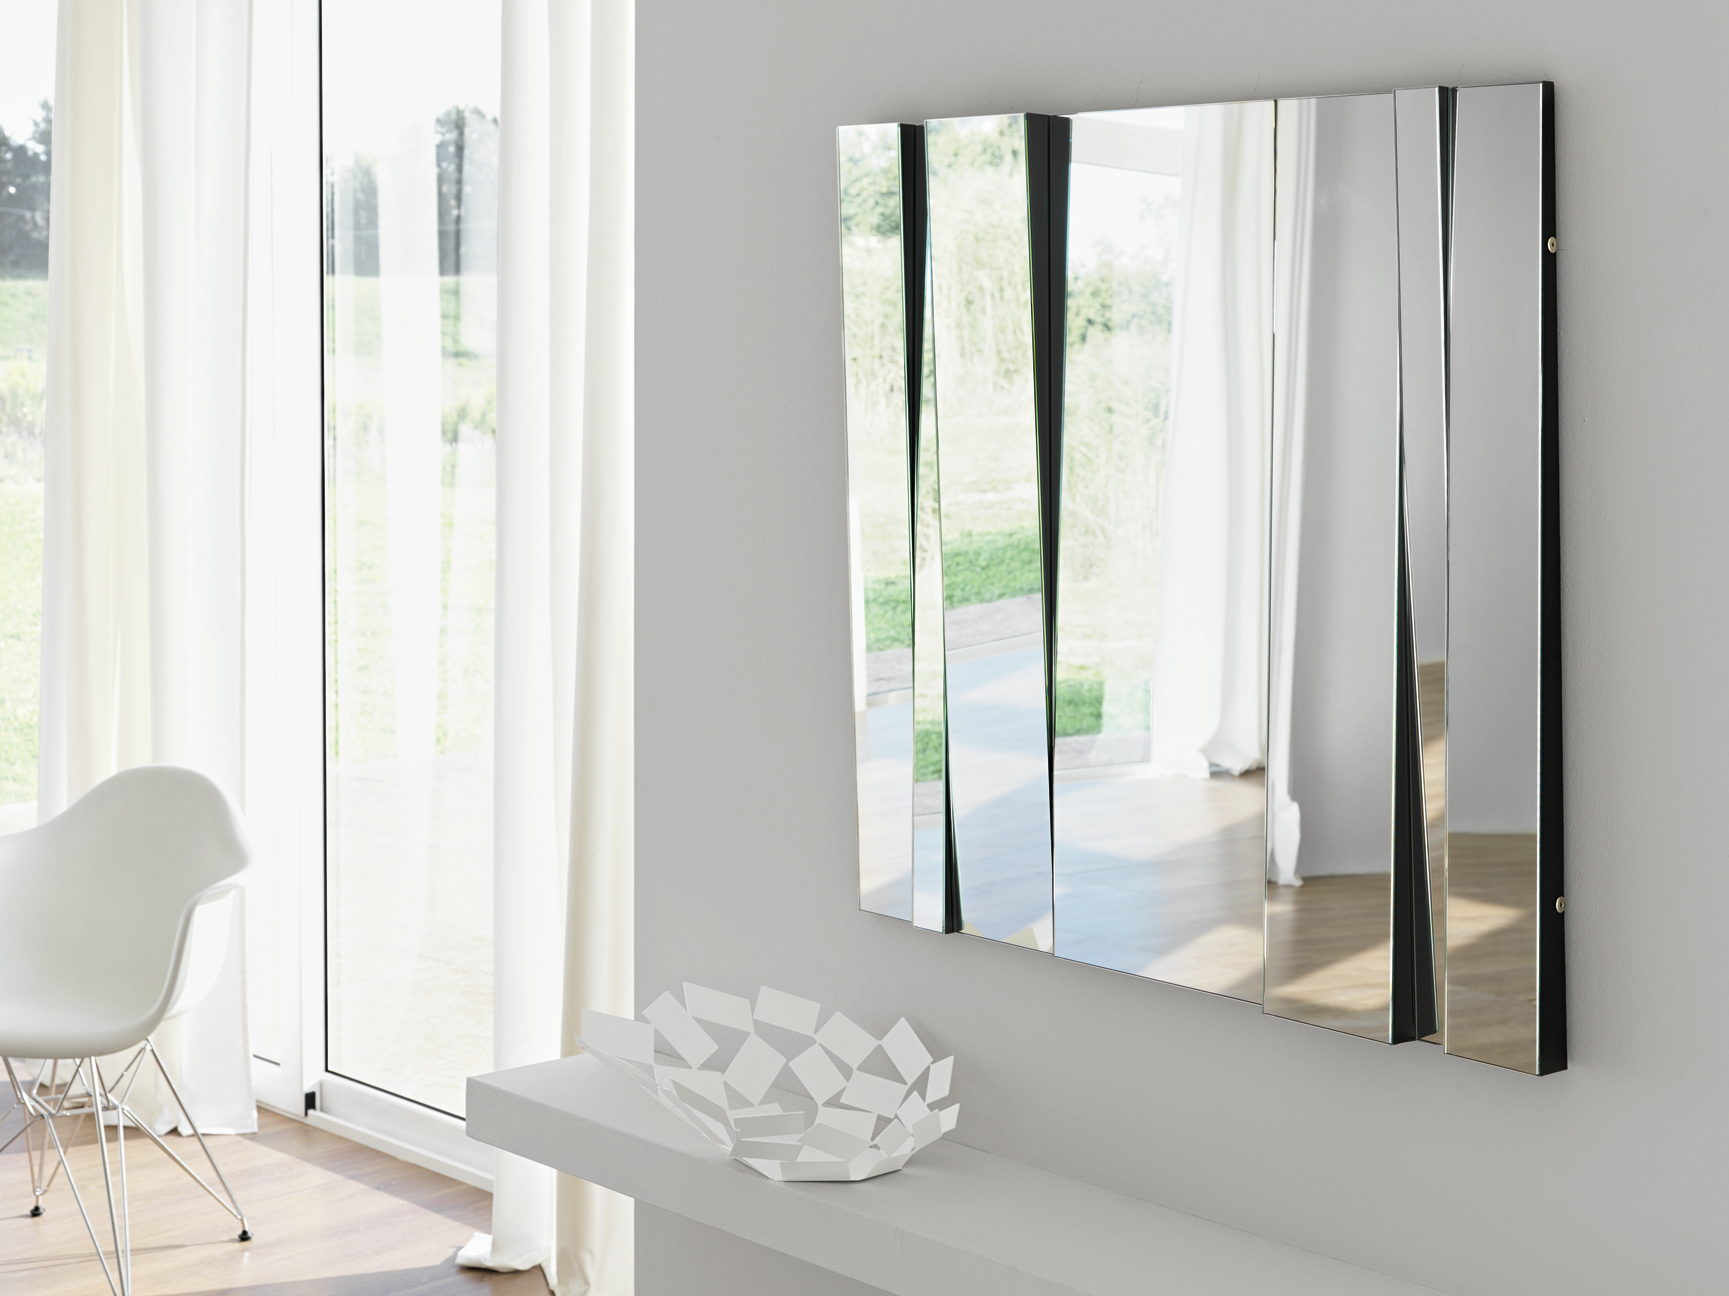 The Best Wall Mirror Designs That Will Be Perfect in Your Home Décor Wall Mirror Designs The Best Wall Mirror Designs That Will Be Perfect in Your Home Décor The Best Wall Mirror Designs That Will Be Perfect in Your Home D  cor